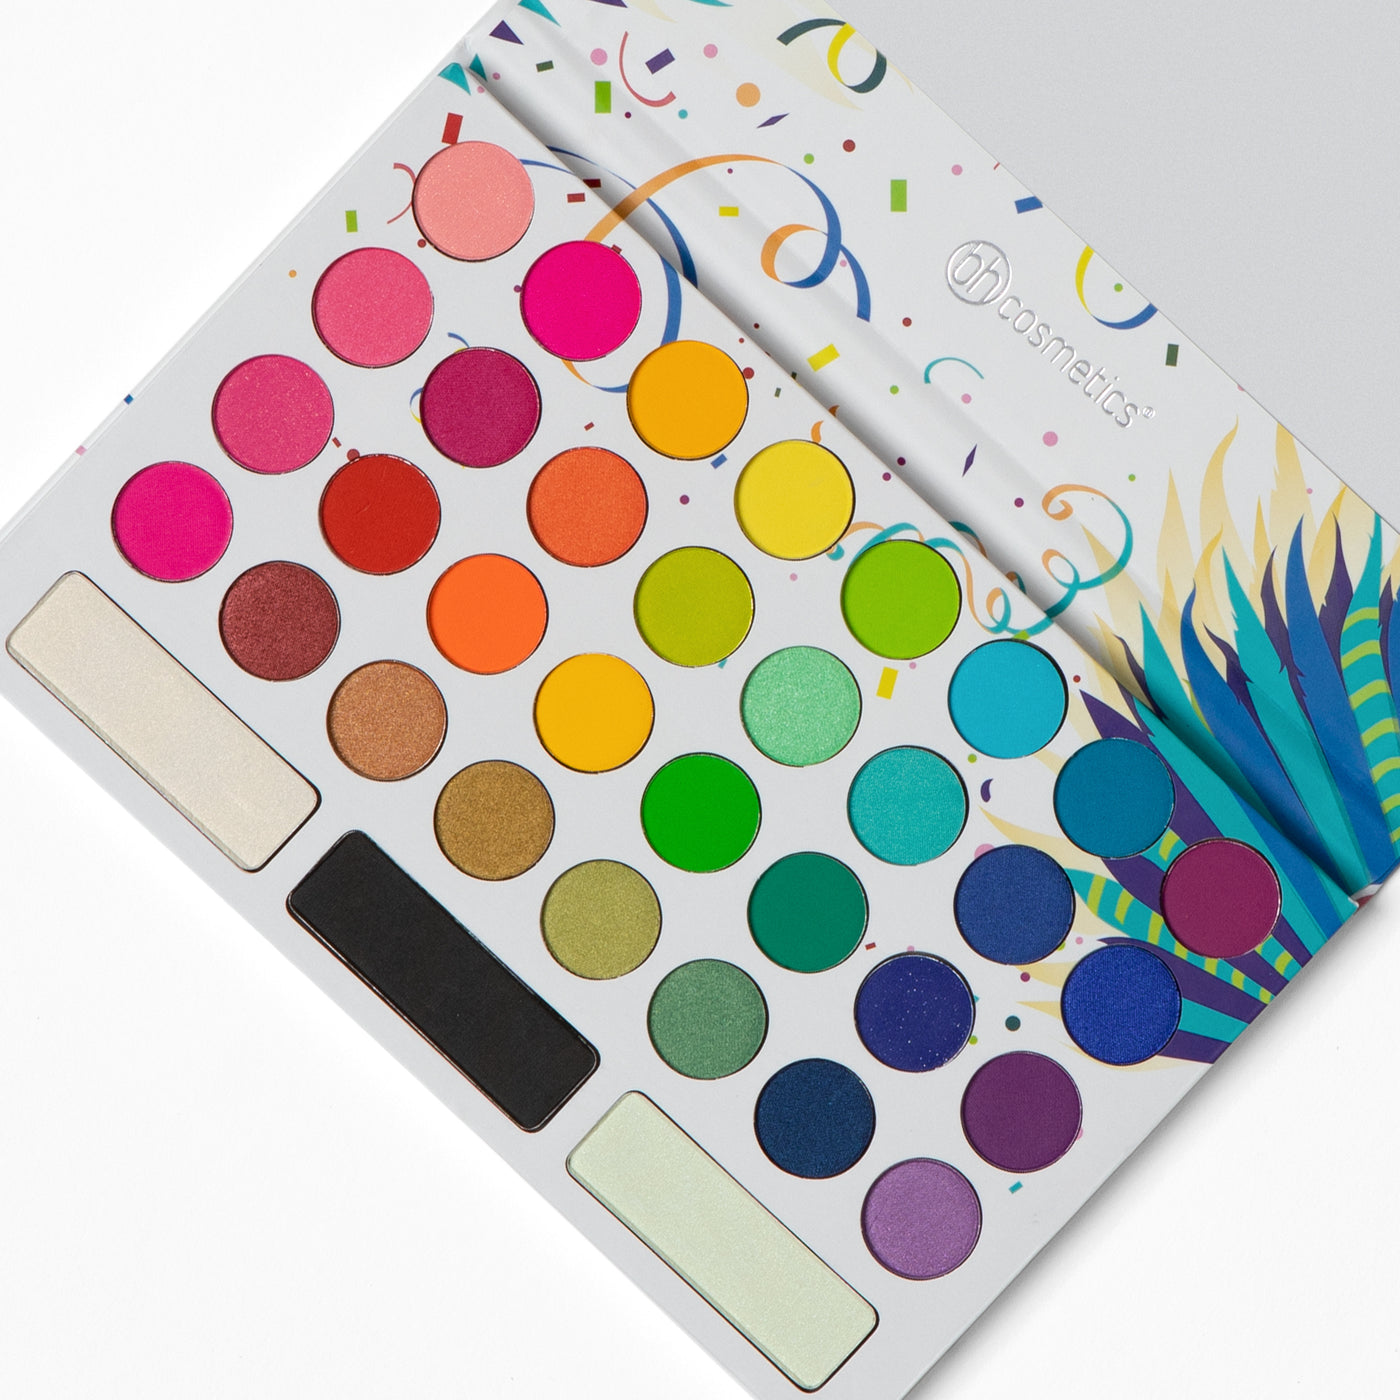 Take Me Back to Brazil 35 Color Pressed Pigment Palette | BH Cosmetics